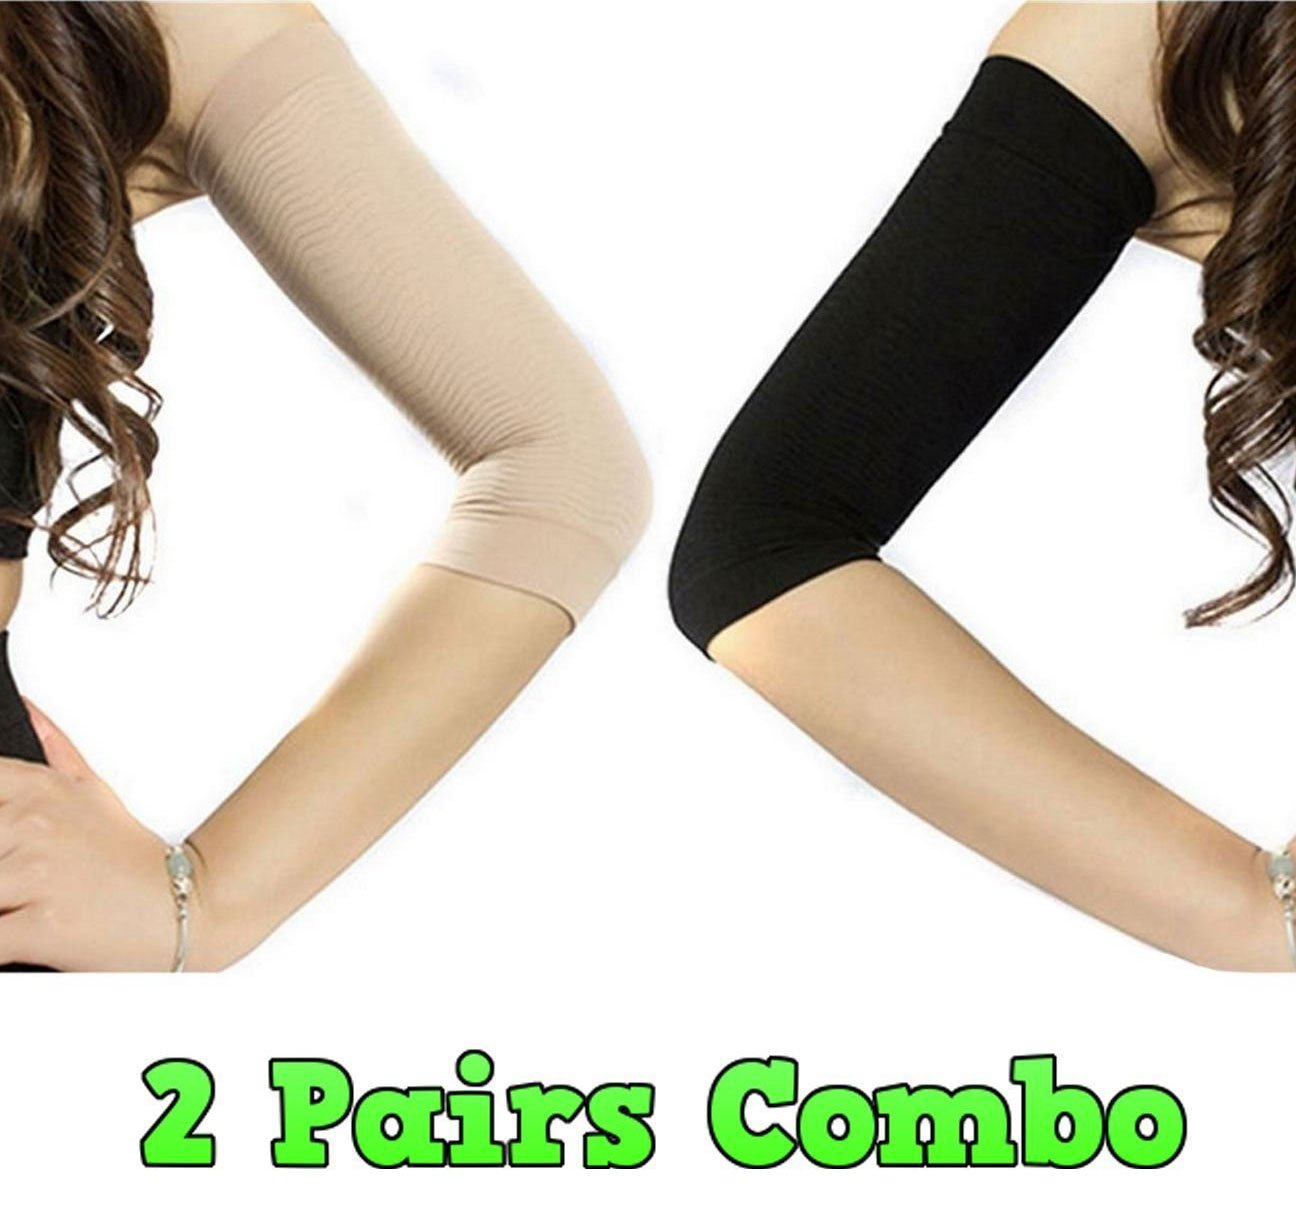 e5a26effdc Amazon.com : Adecco LLC 2 Pair Slimming Compression Arm Shaper Helps Tone  Shape Upper Arms Sleeve : Beauty